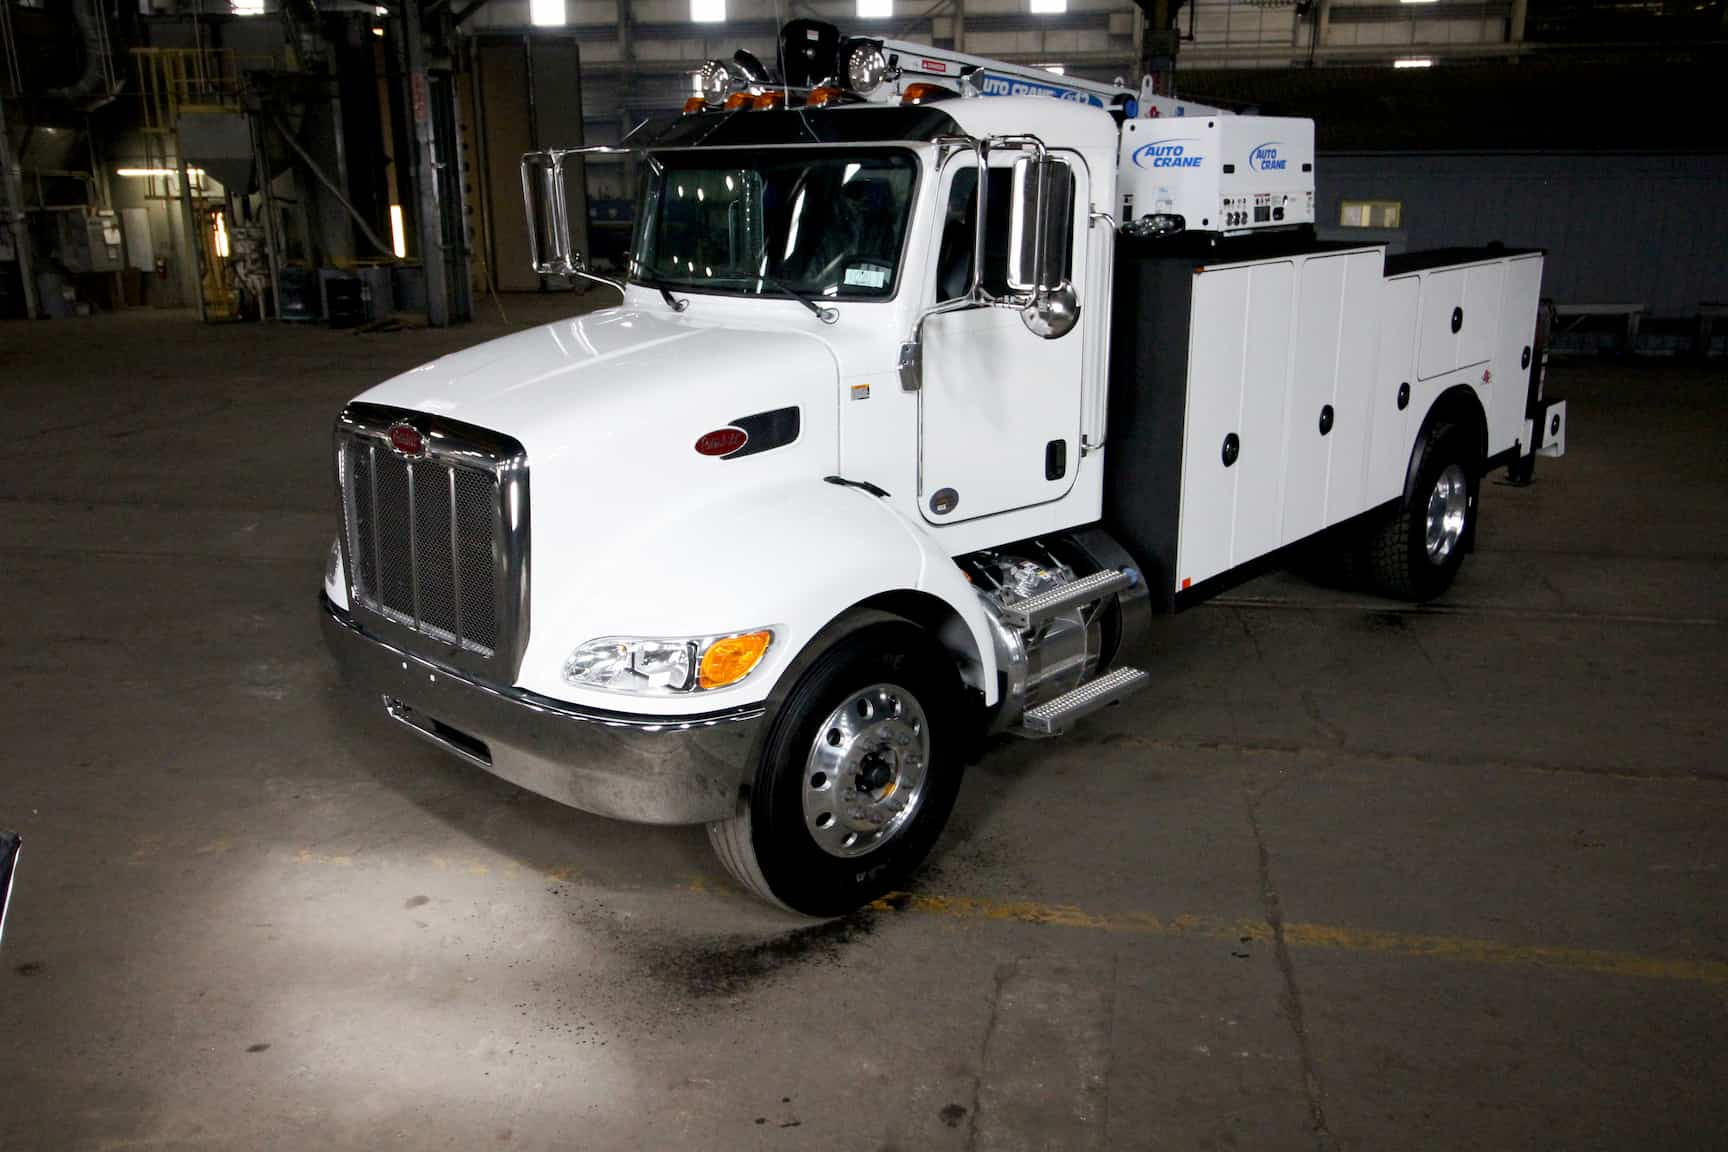 What are some misconceptions about service trucks